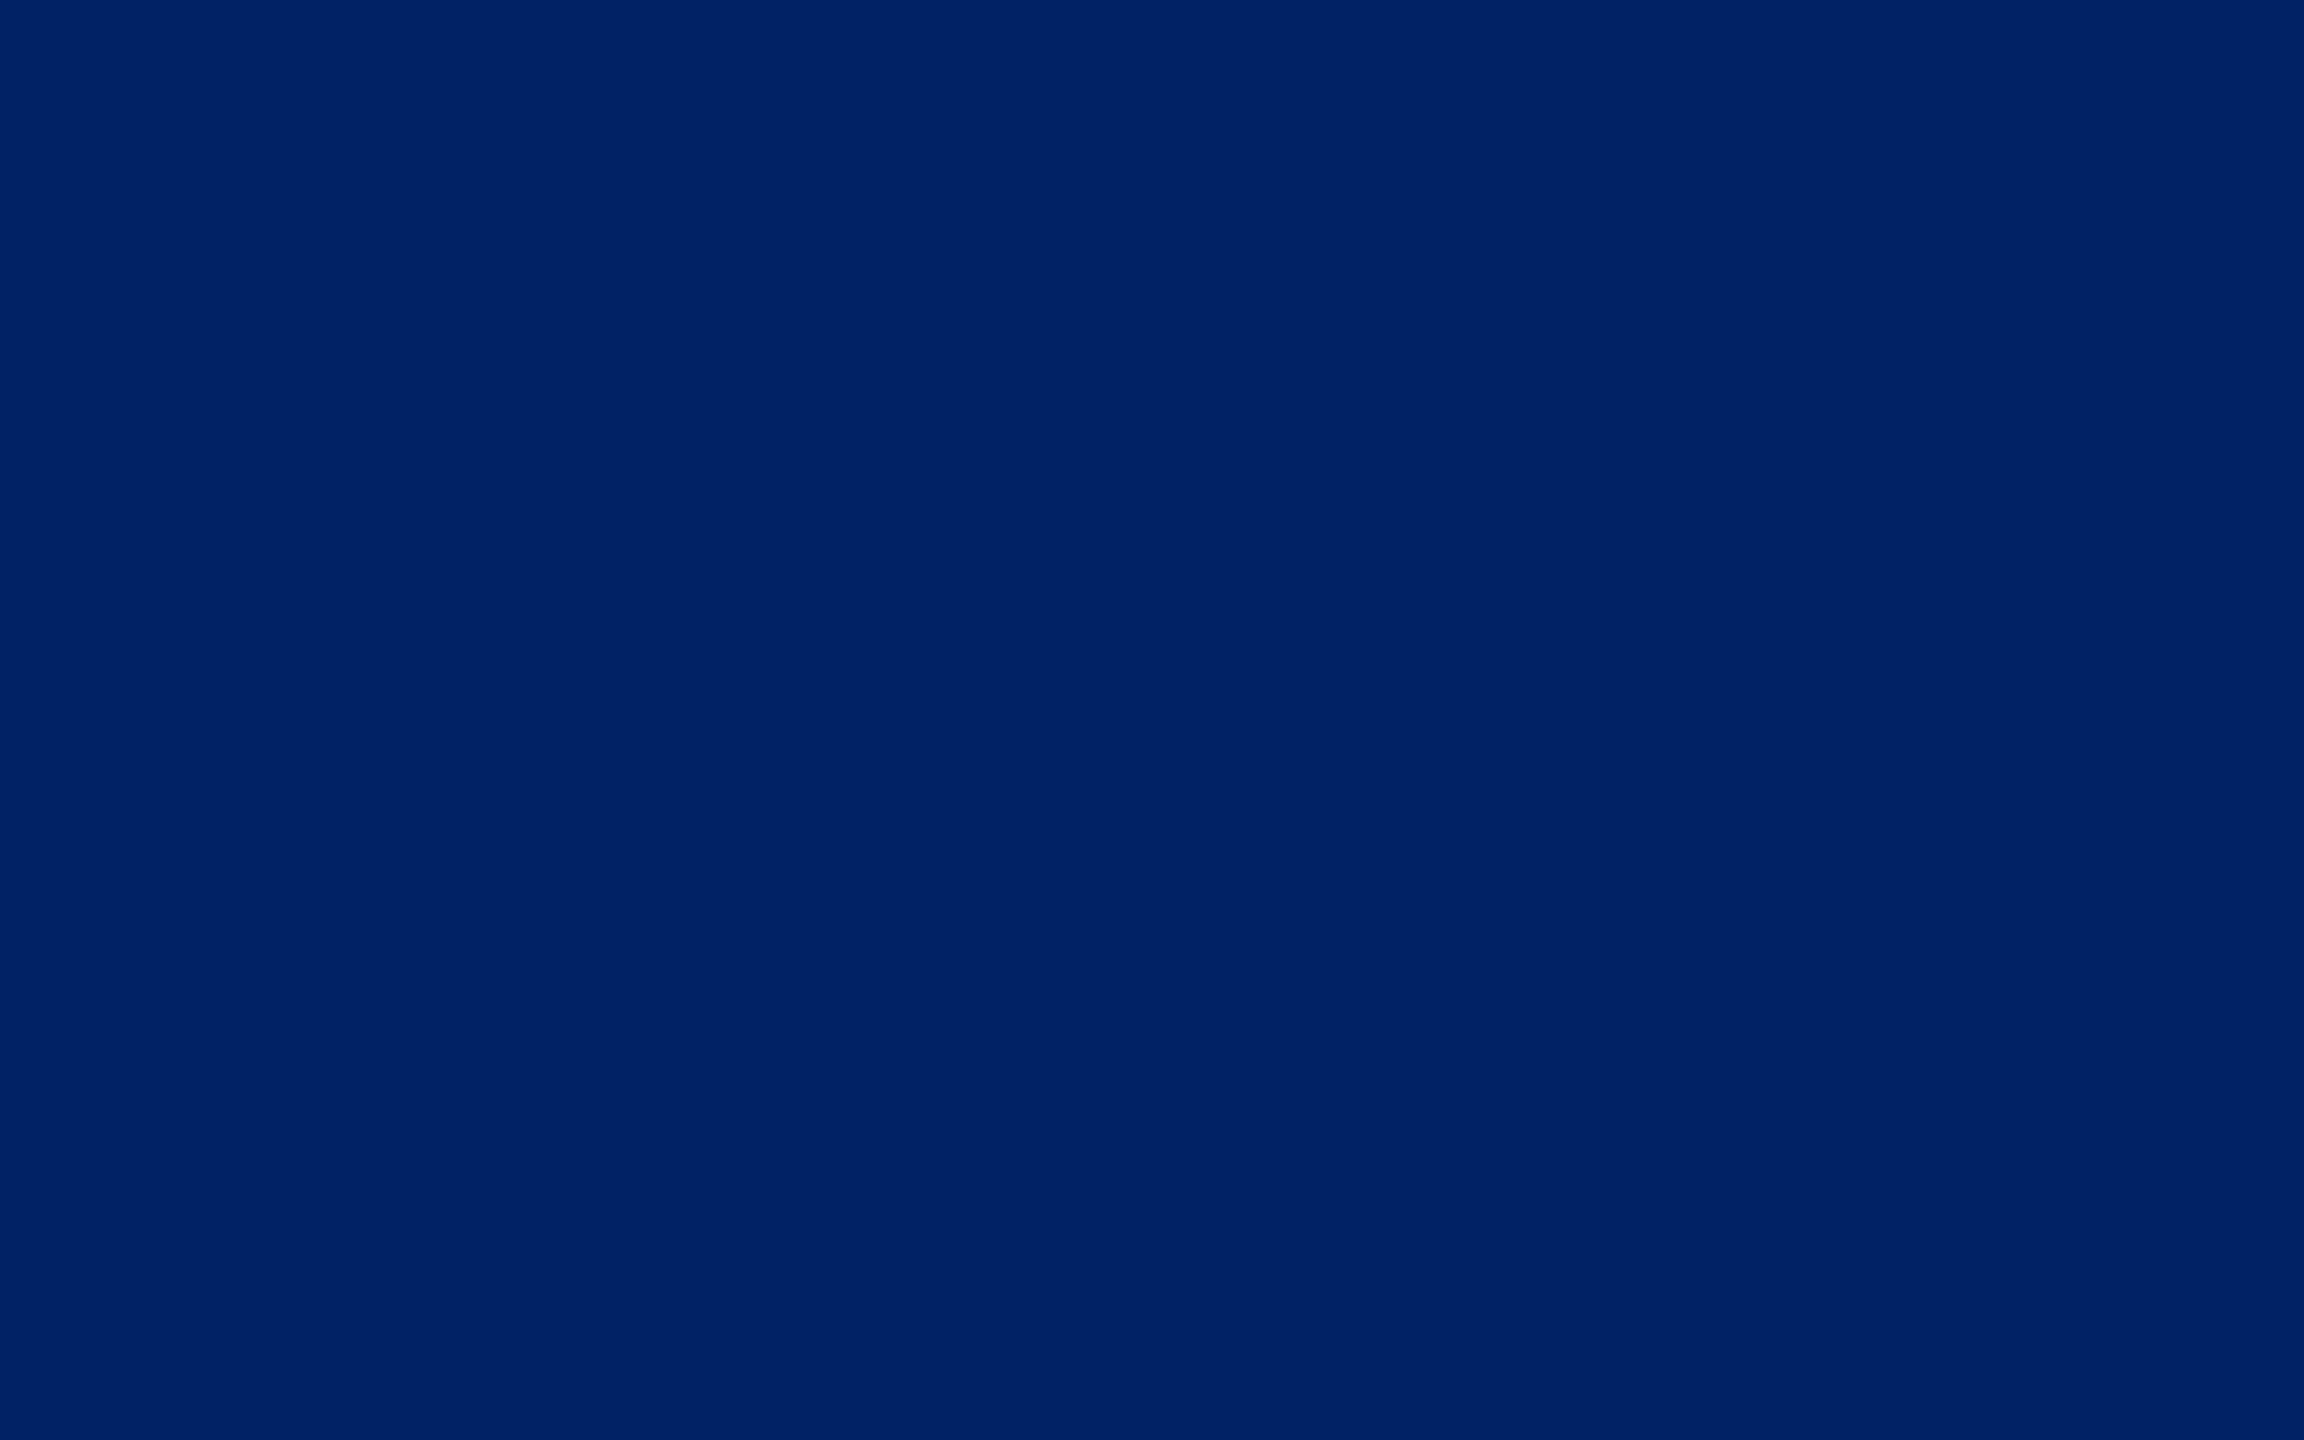 2304x1440 Royal Blue Traditional Solid Color Background